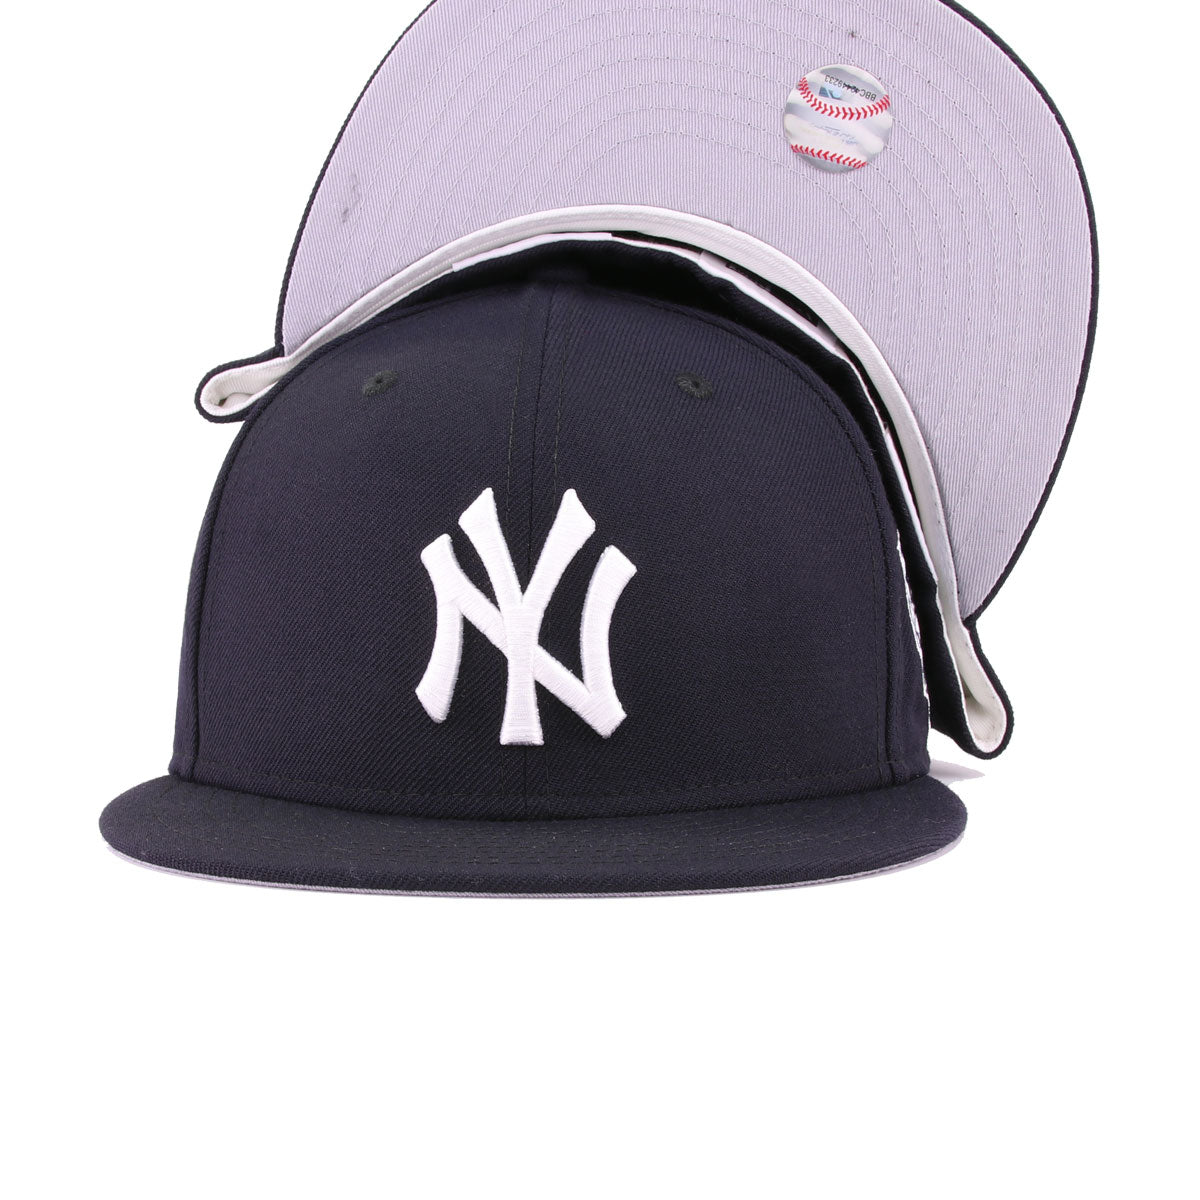 fba6fc9687140 New York Yankees Navy Cooperstown 2000 World Series New Era 59Fifty Fitted